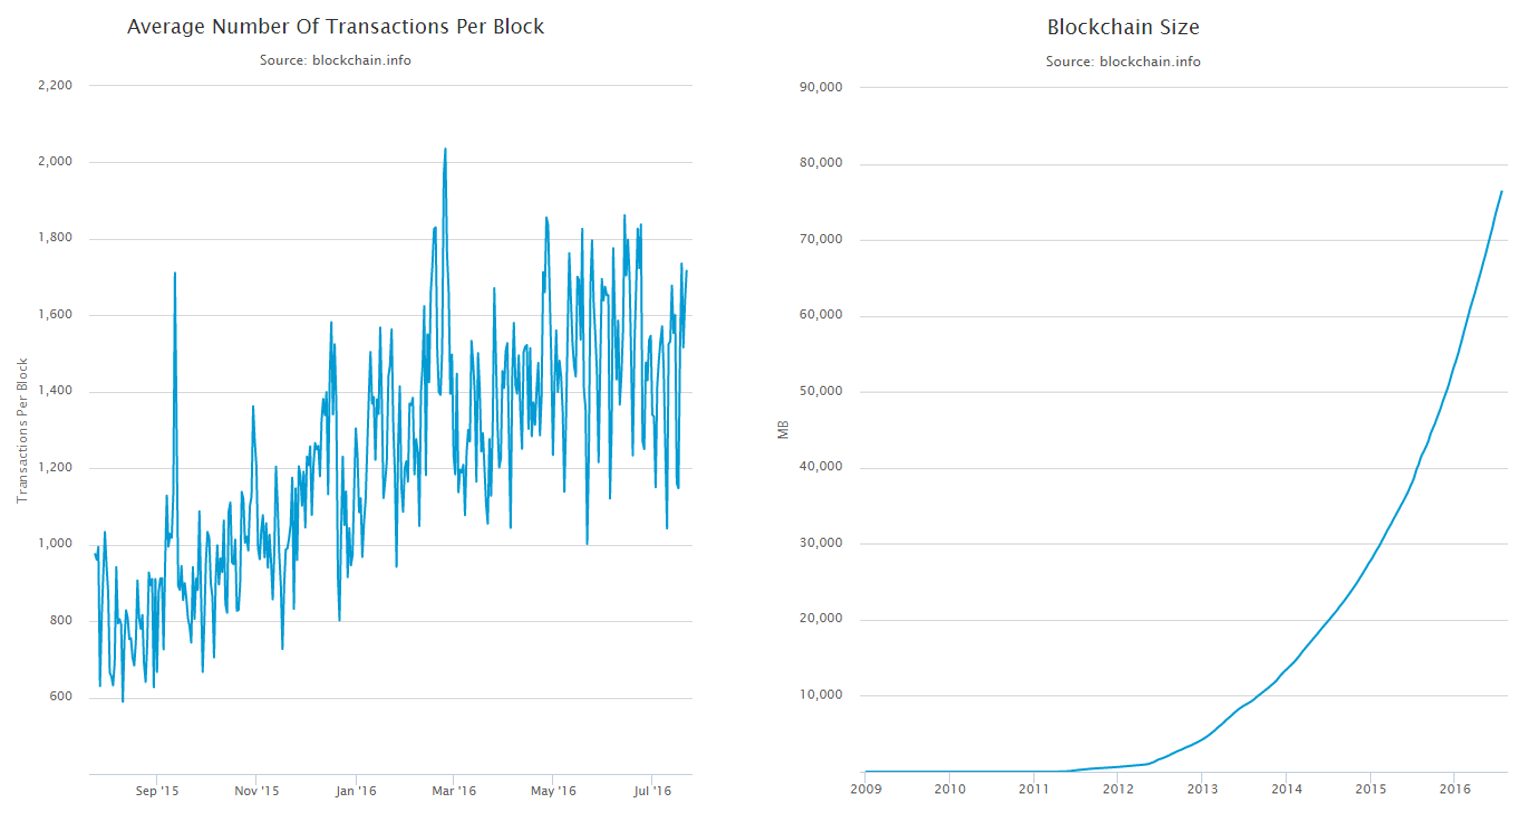 bitcoin-blockchain-transactions-and-size.png